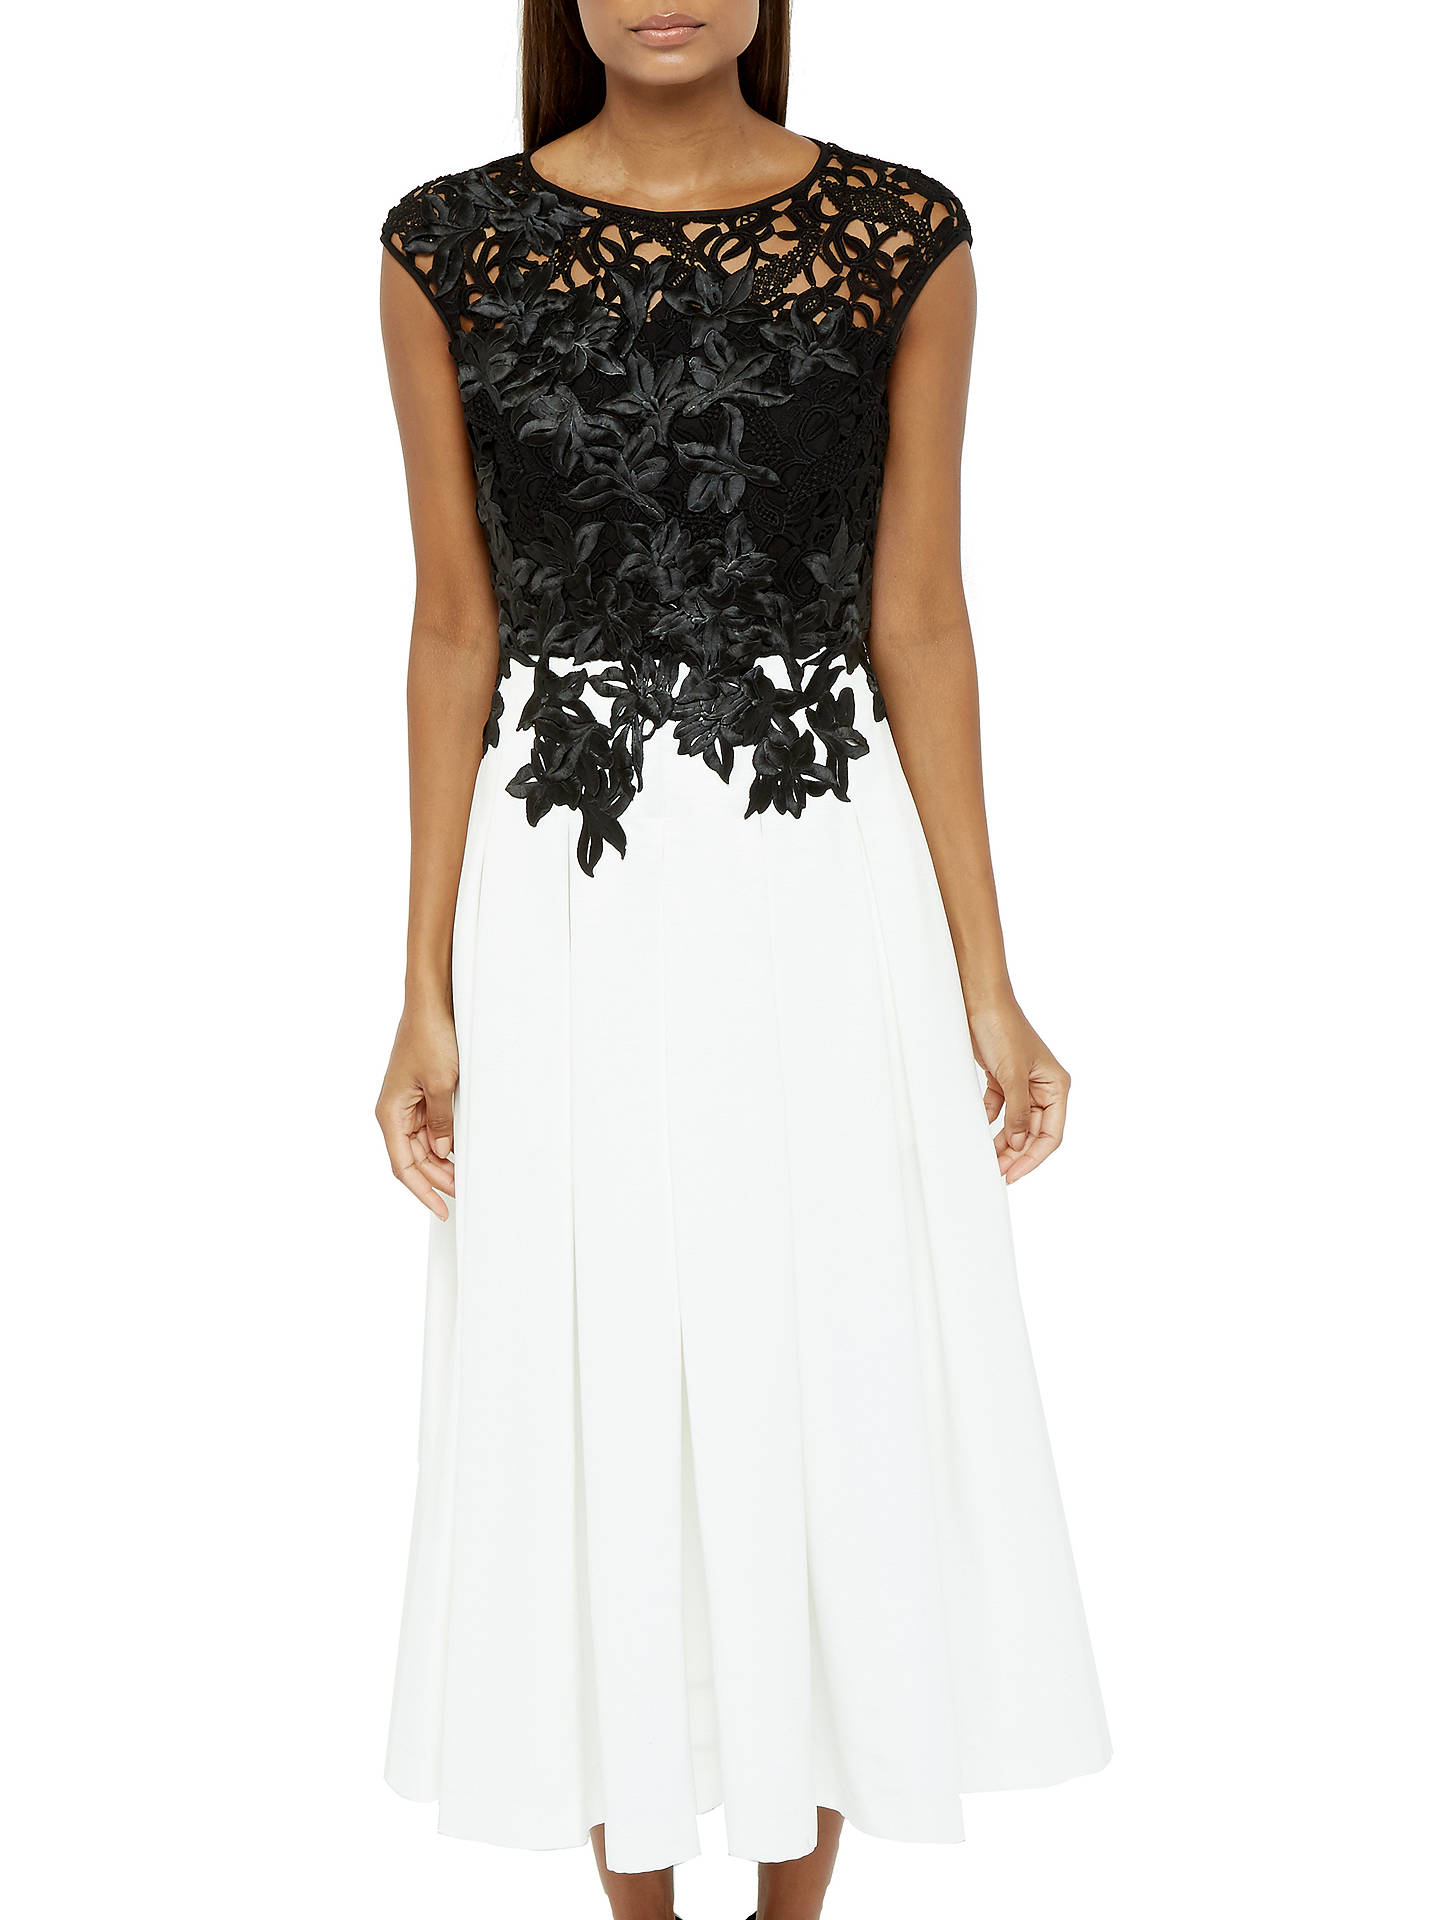 Ted Baker Ilsa Applique Lace Bodice Dress Blackwhite At